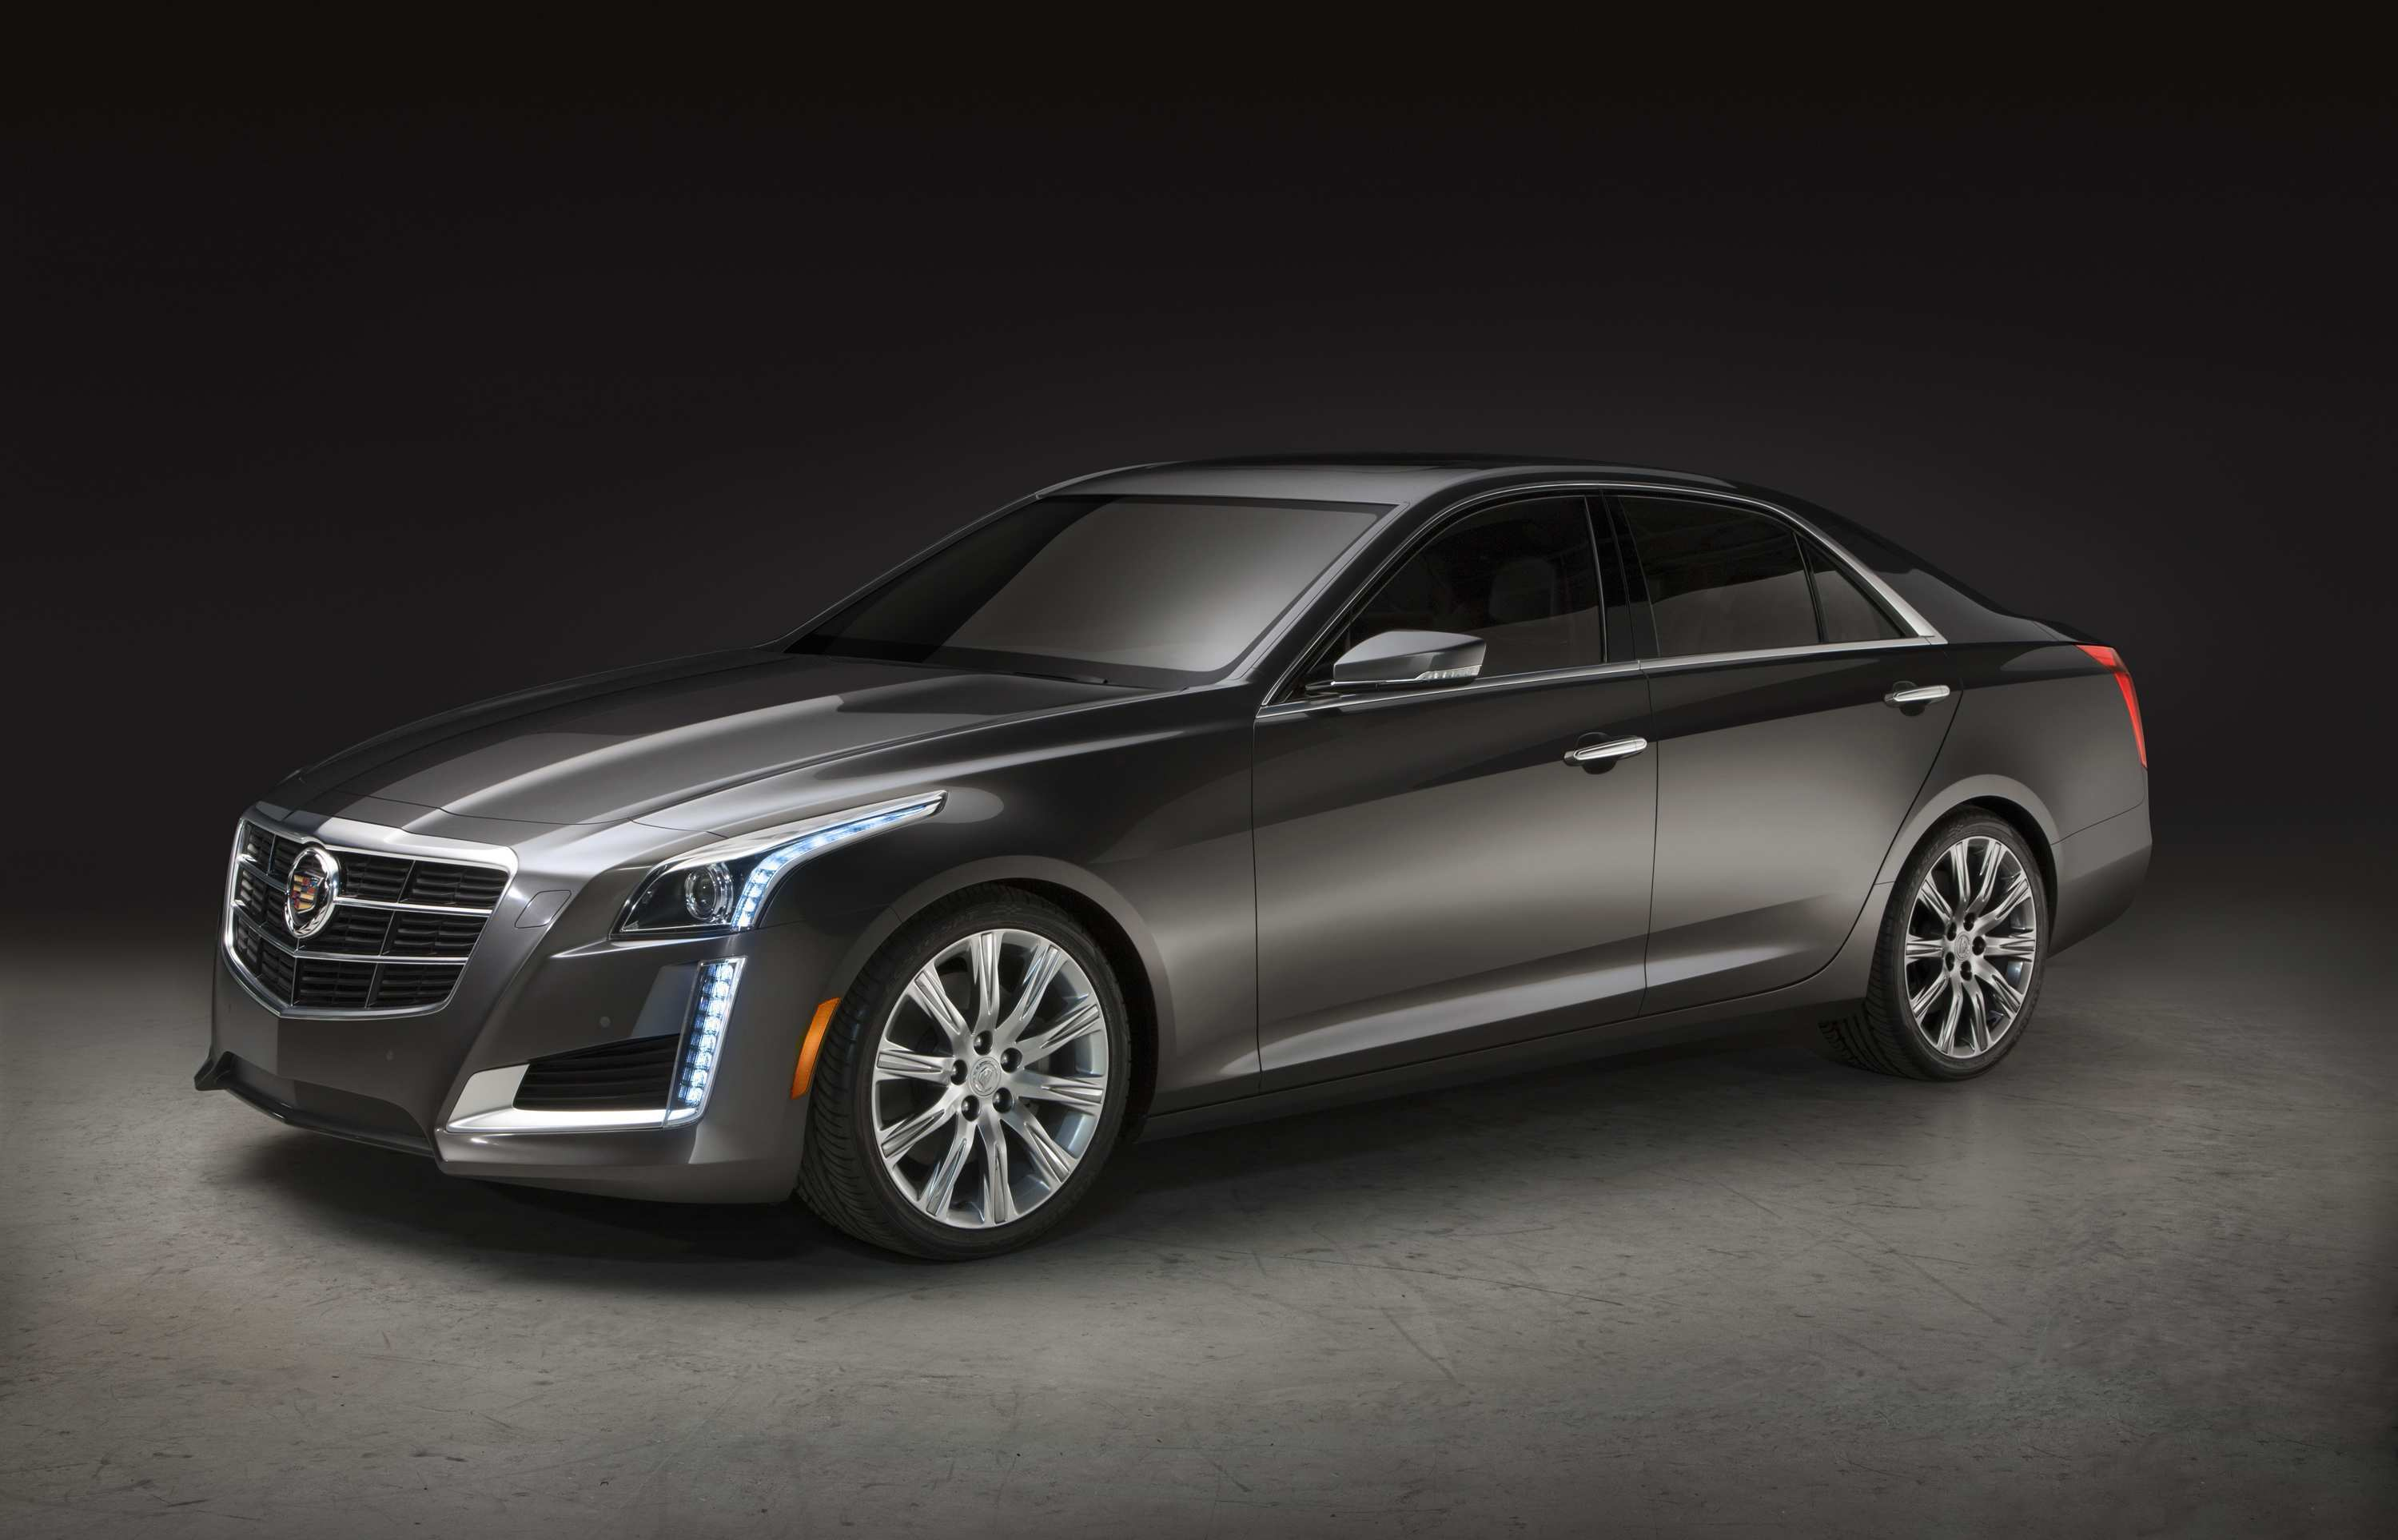 69 All New 2020 Cadillac Ats Wallpaper by 2020 Cadillac Ats